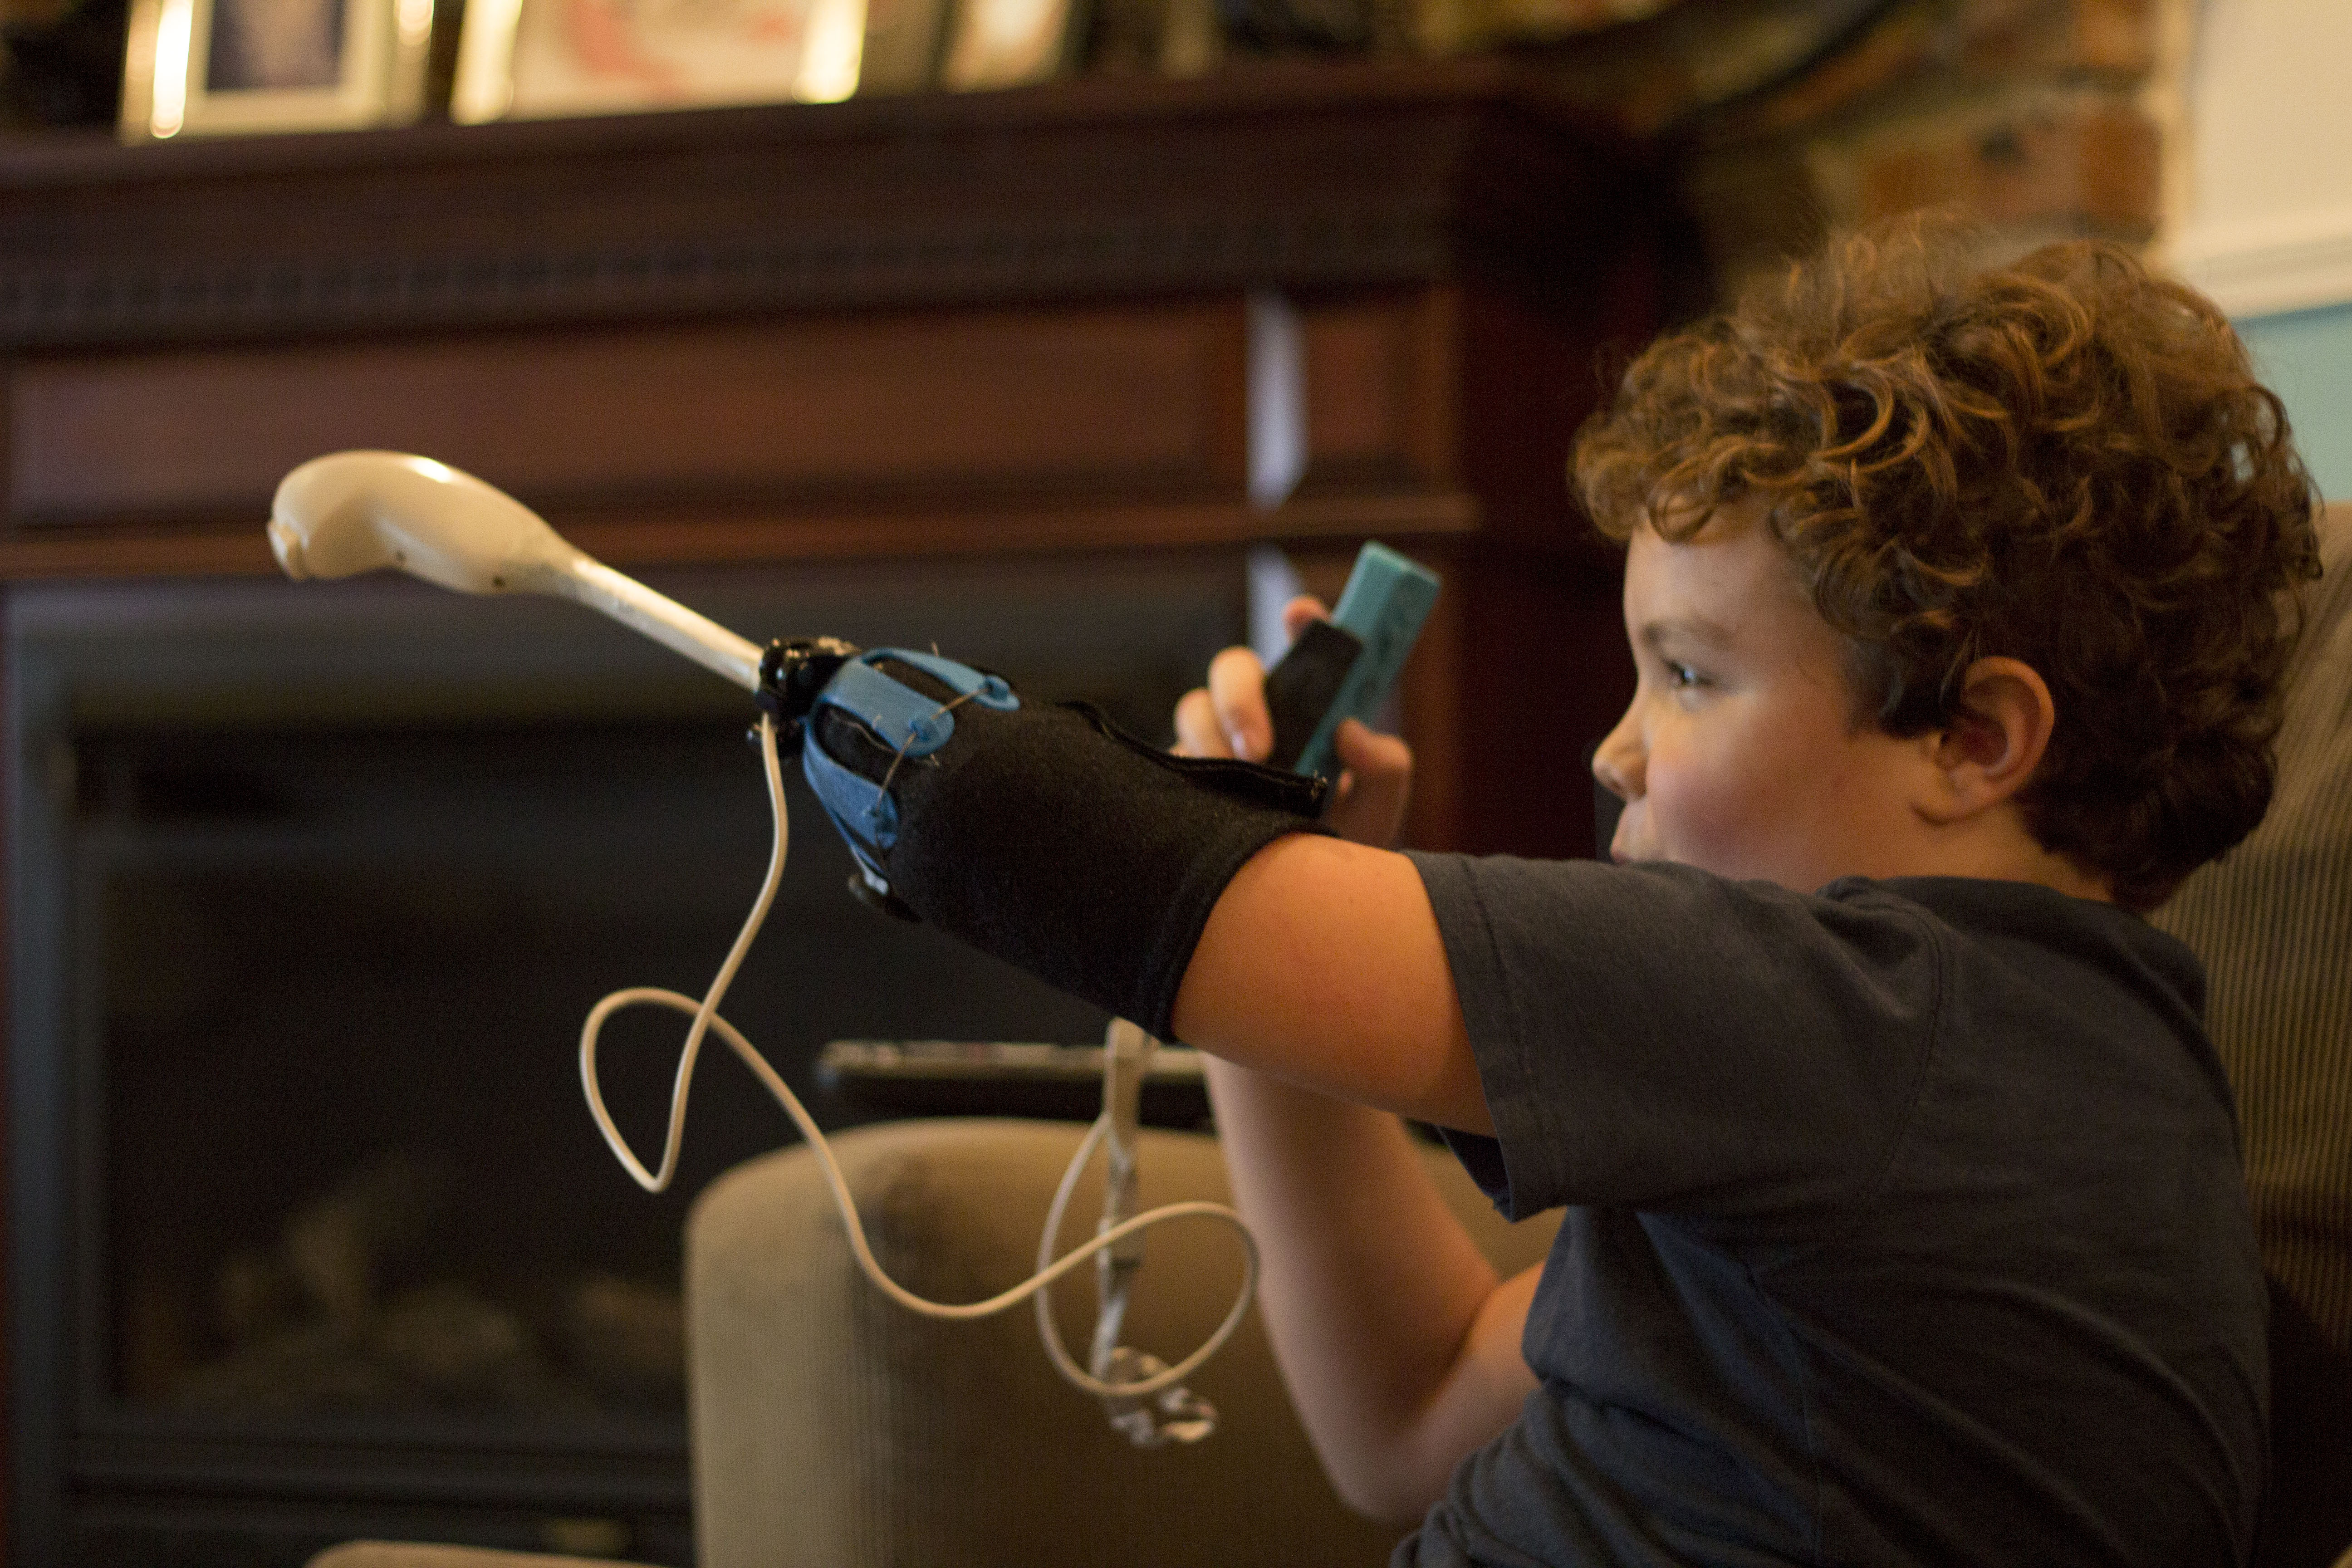 The Nintendo Wii uses a two handed interface. This attachment allows Aidan to use both of the Wii controllers simultaneously.